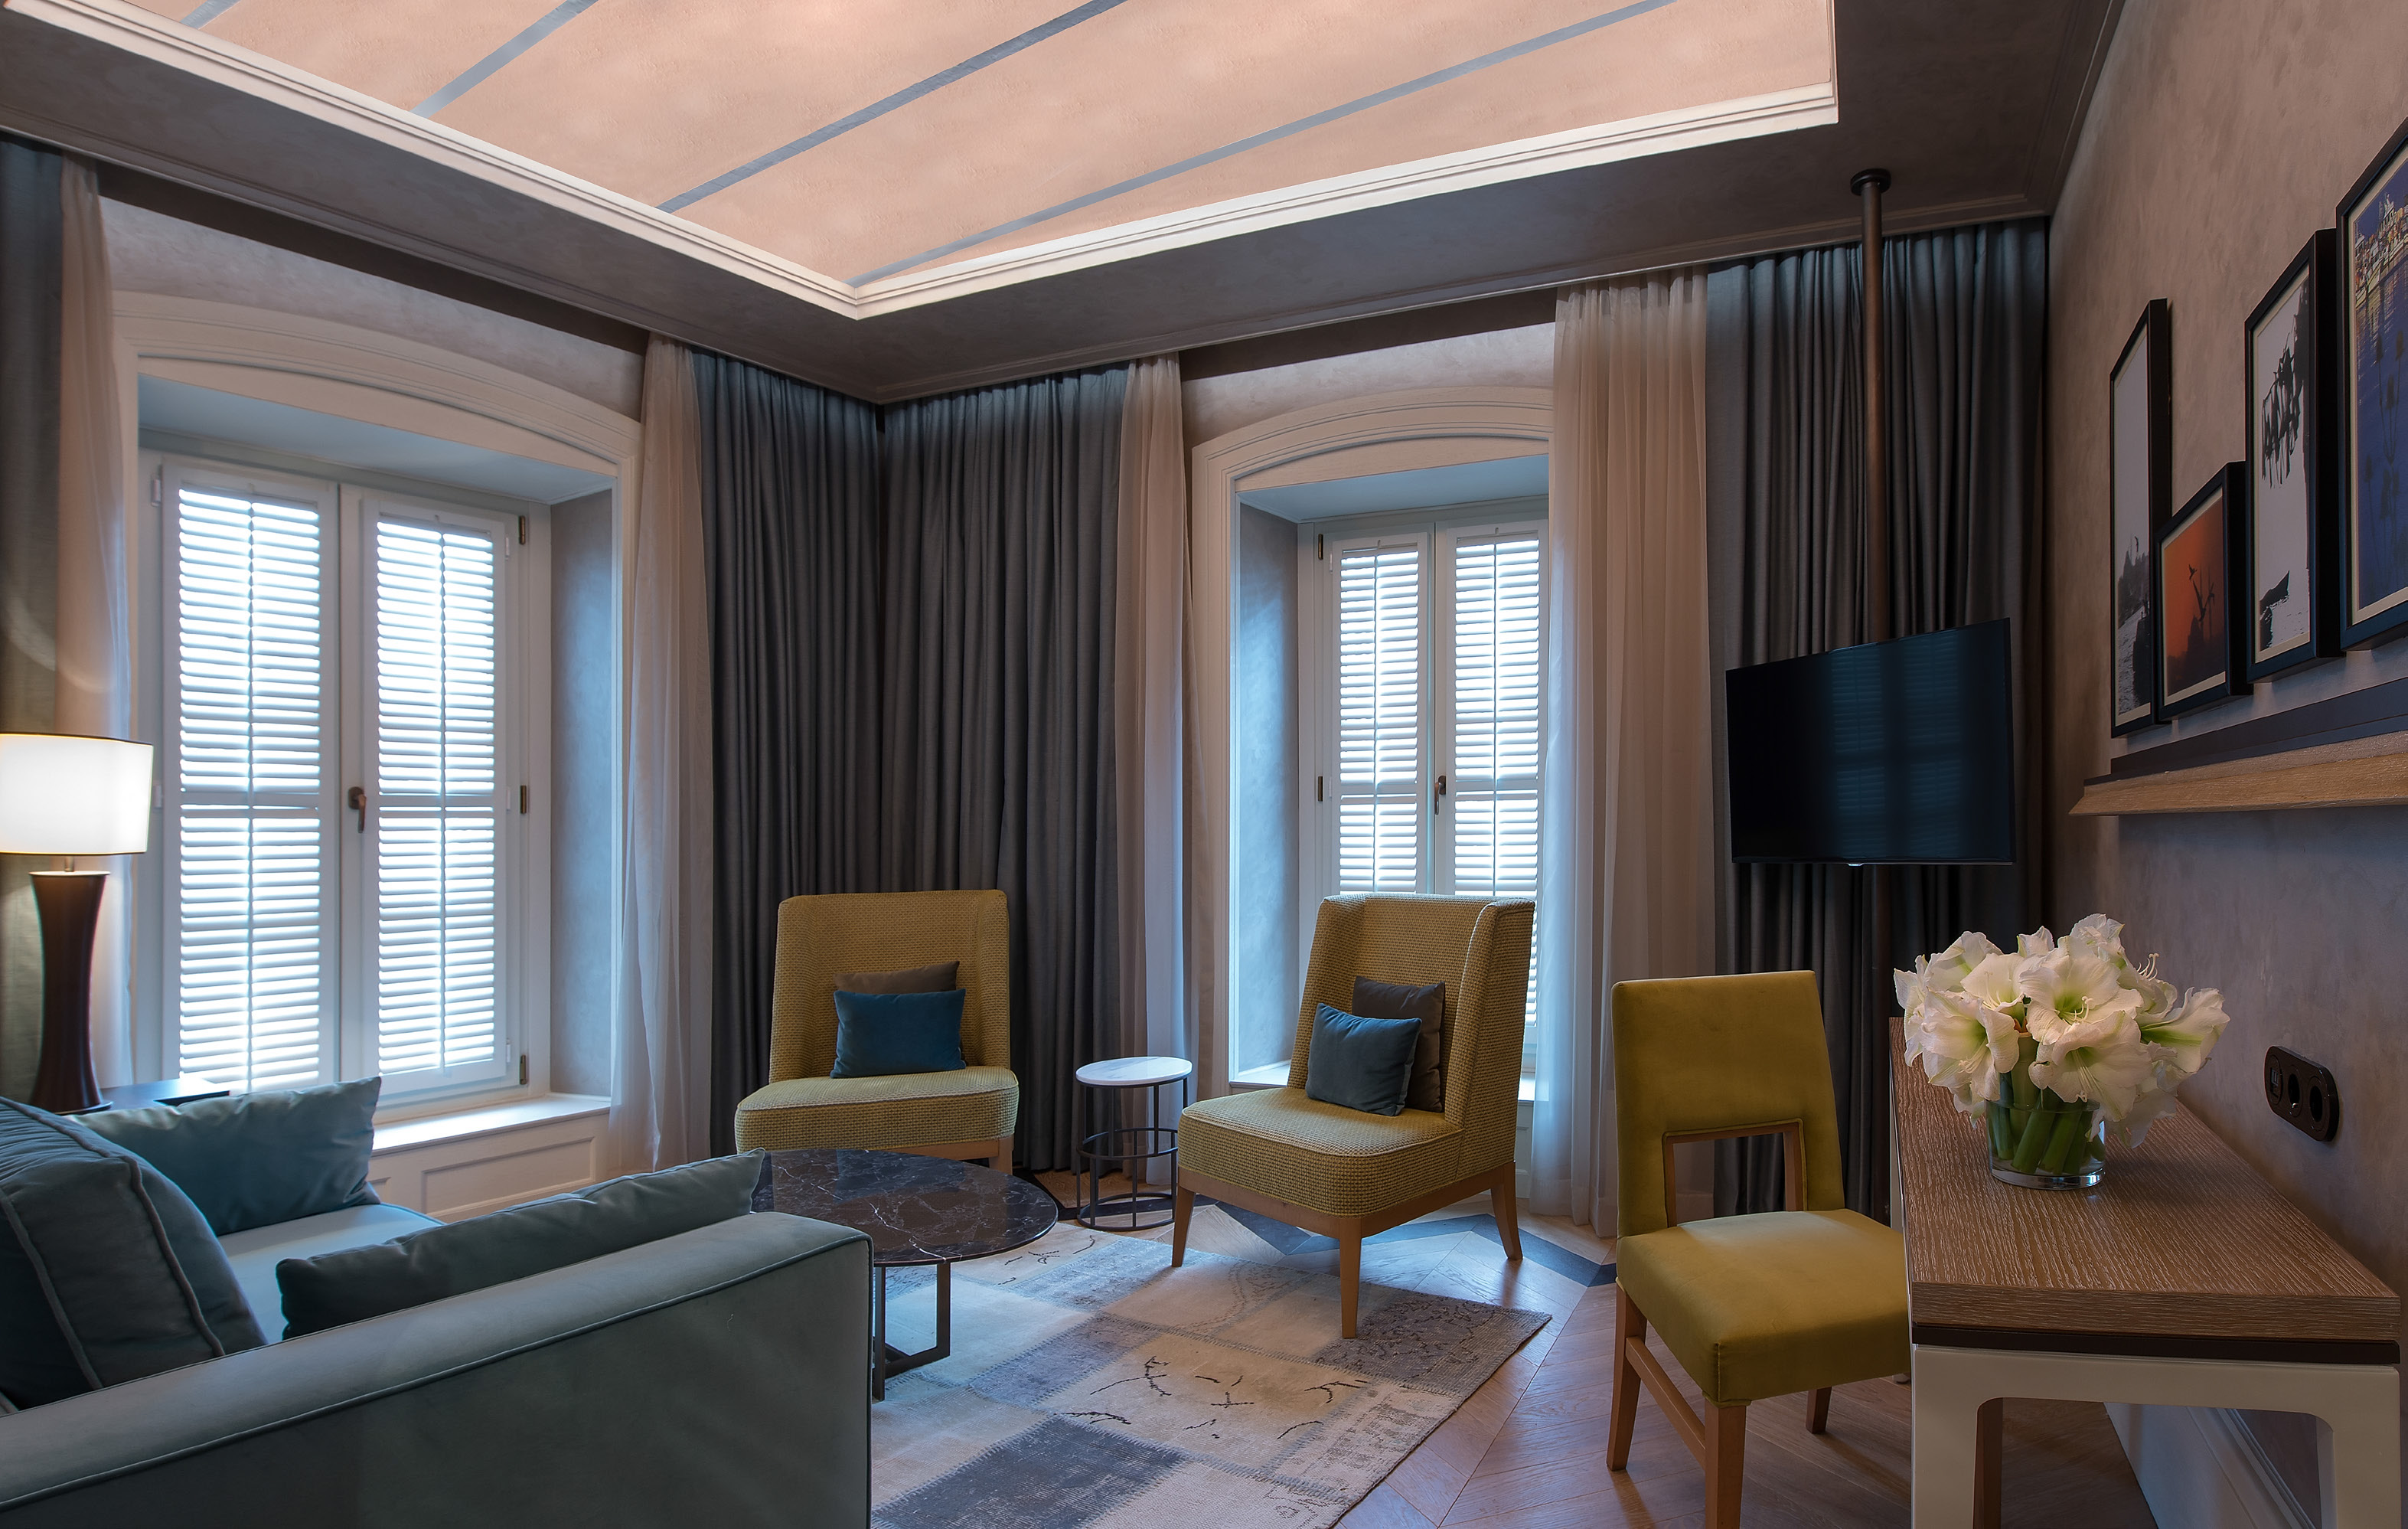 A project where the new is extracted from the old: 10 karakÖy ...